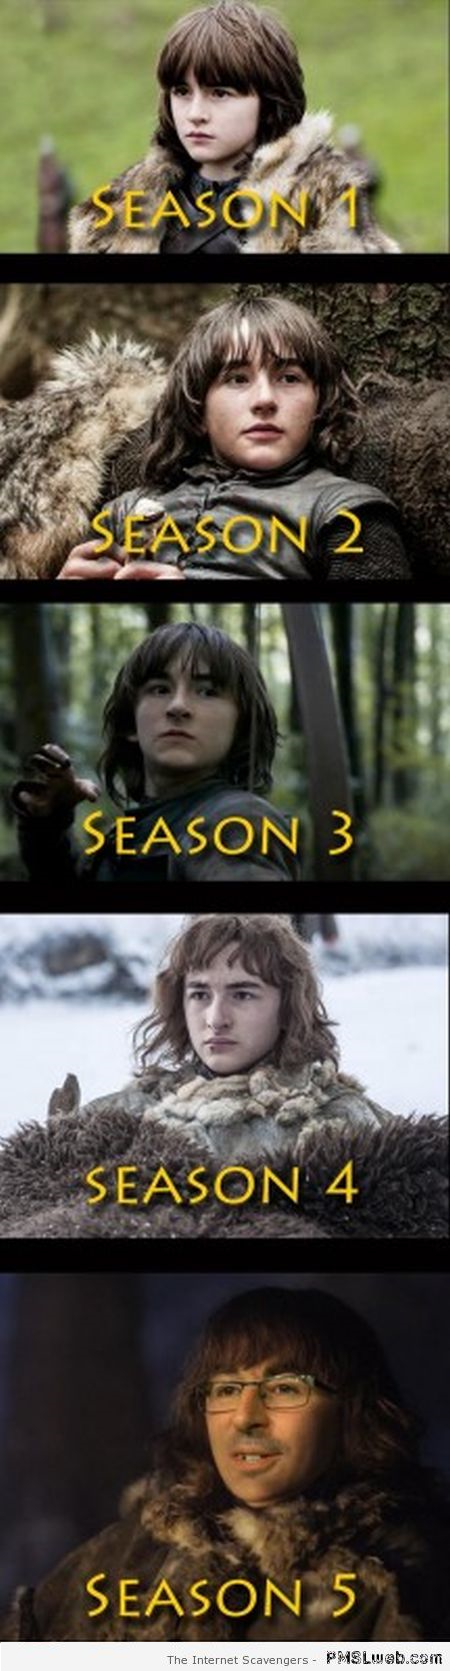 Funny evolution of Bran Stark at PMSLweb.com